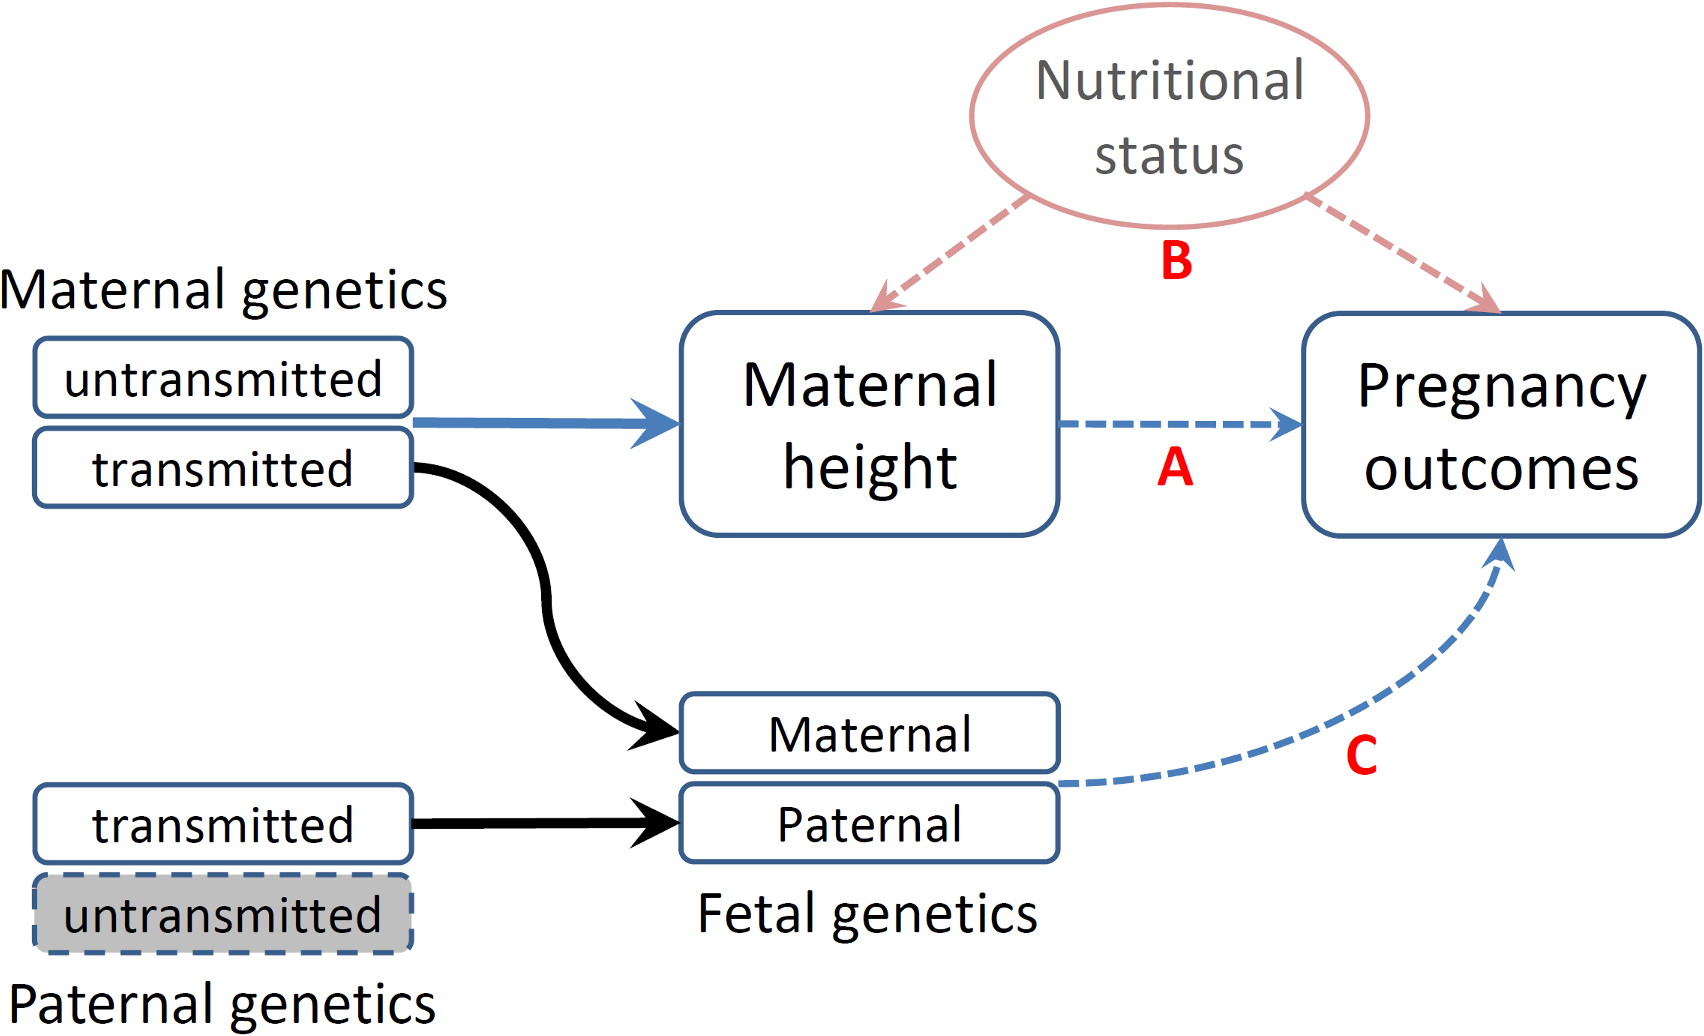 Schematic representation of various causal mechanisms that can lead to the observational associations between maternal height and pregnancy outcomes.